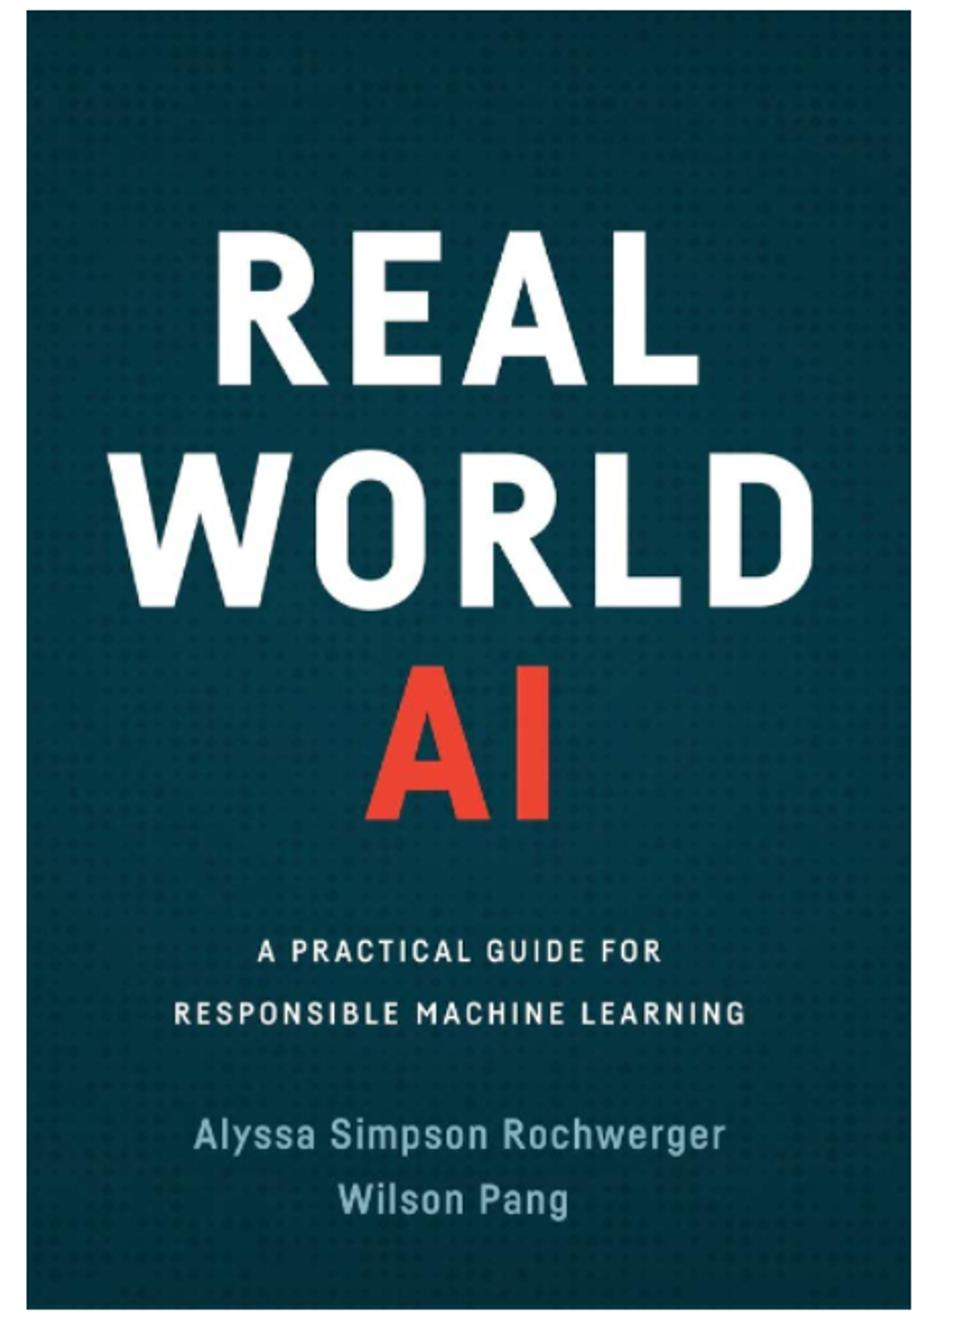 Cover of the book, Real World AI